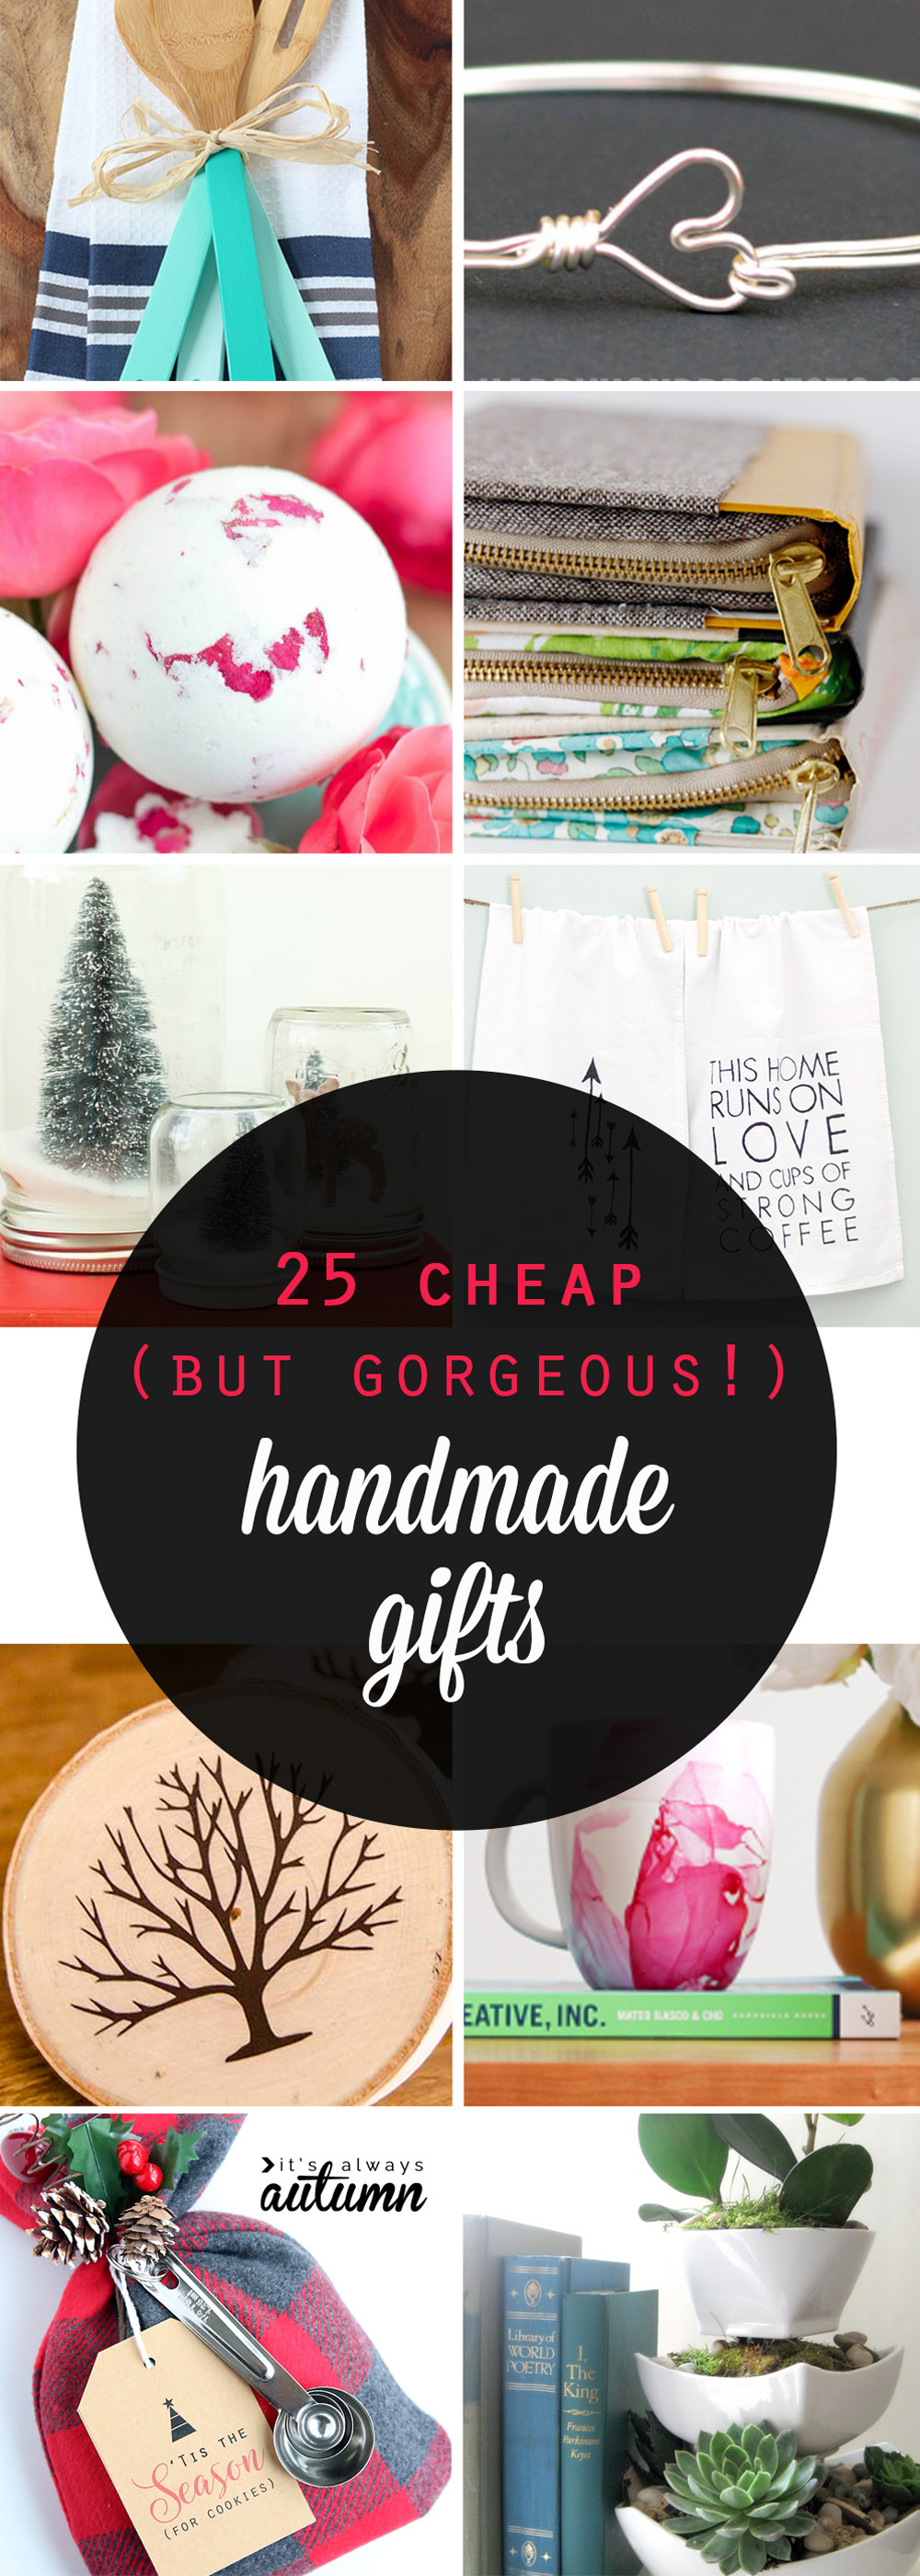 Best Christmas Gift Ideas  25 cheap but gorgeous  DIY t ideas It s Always Autumn